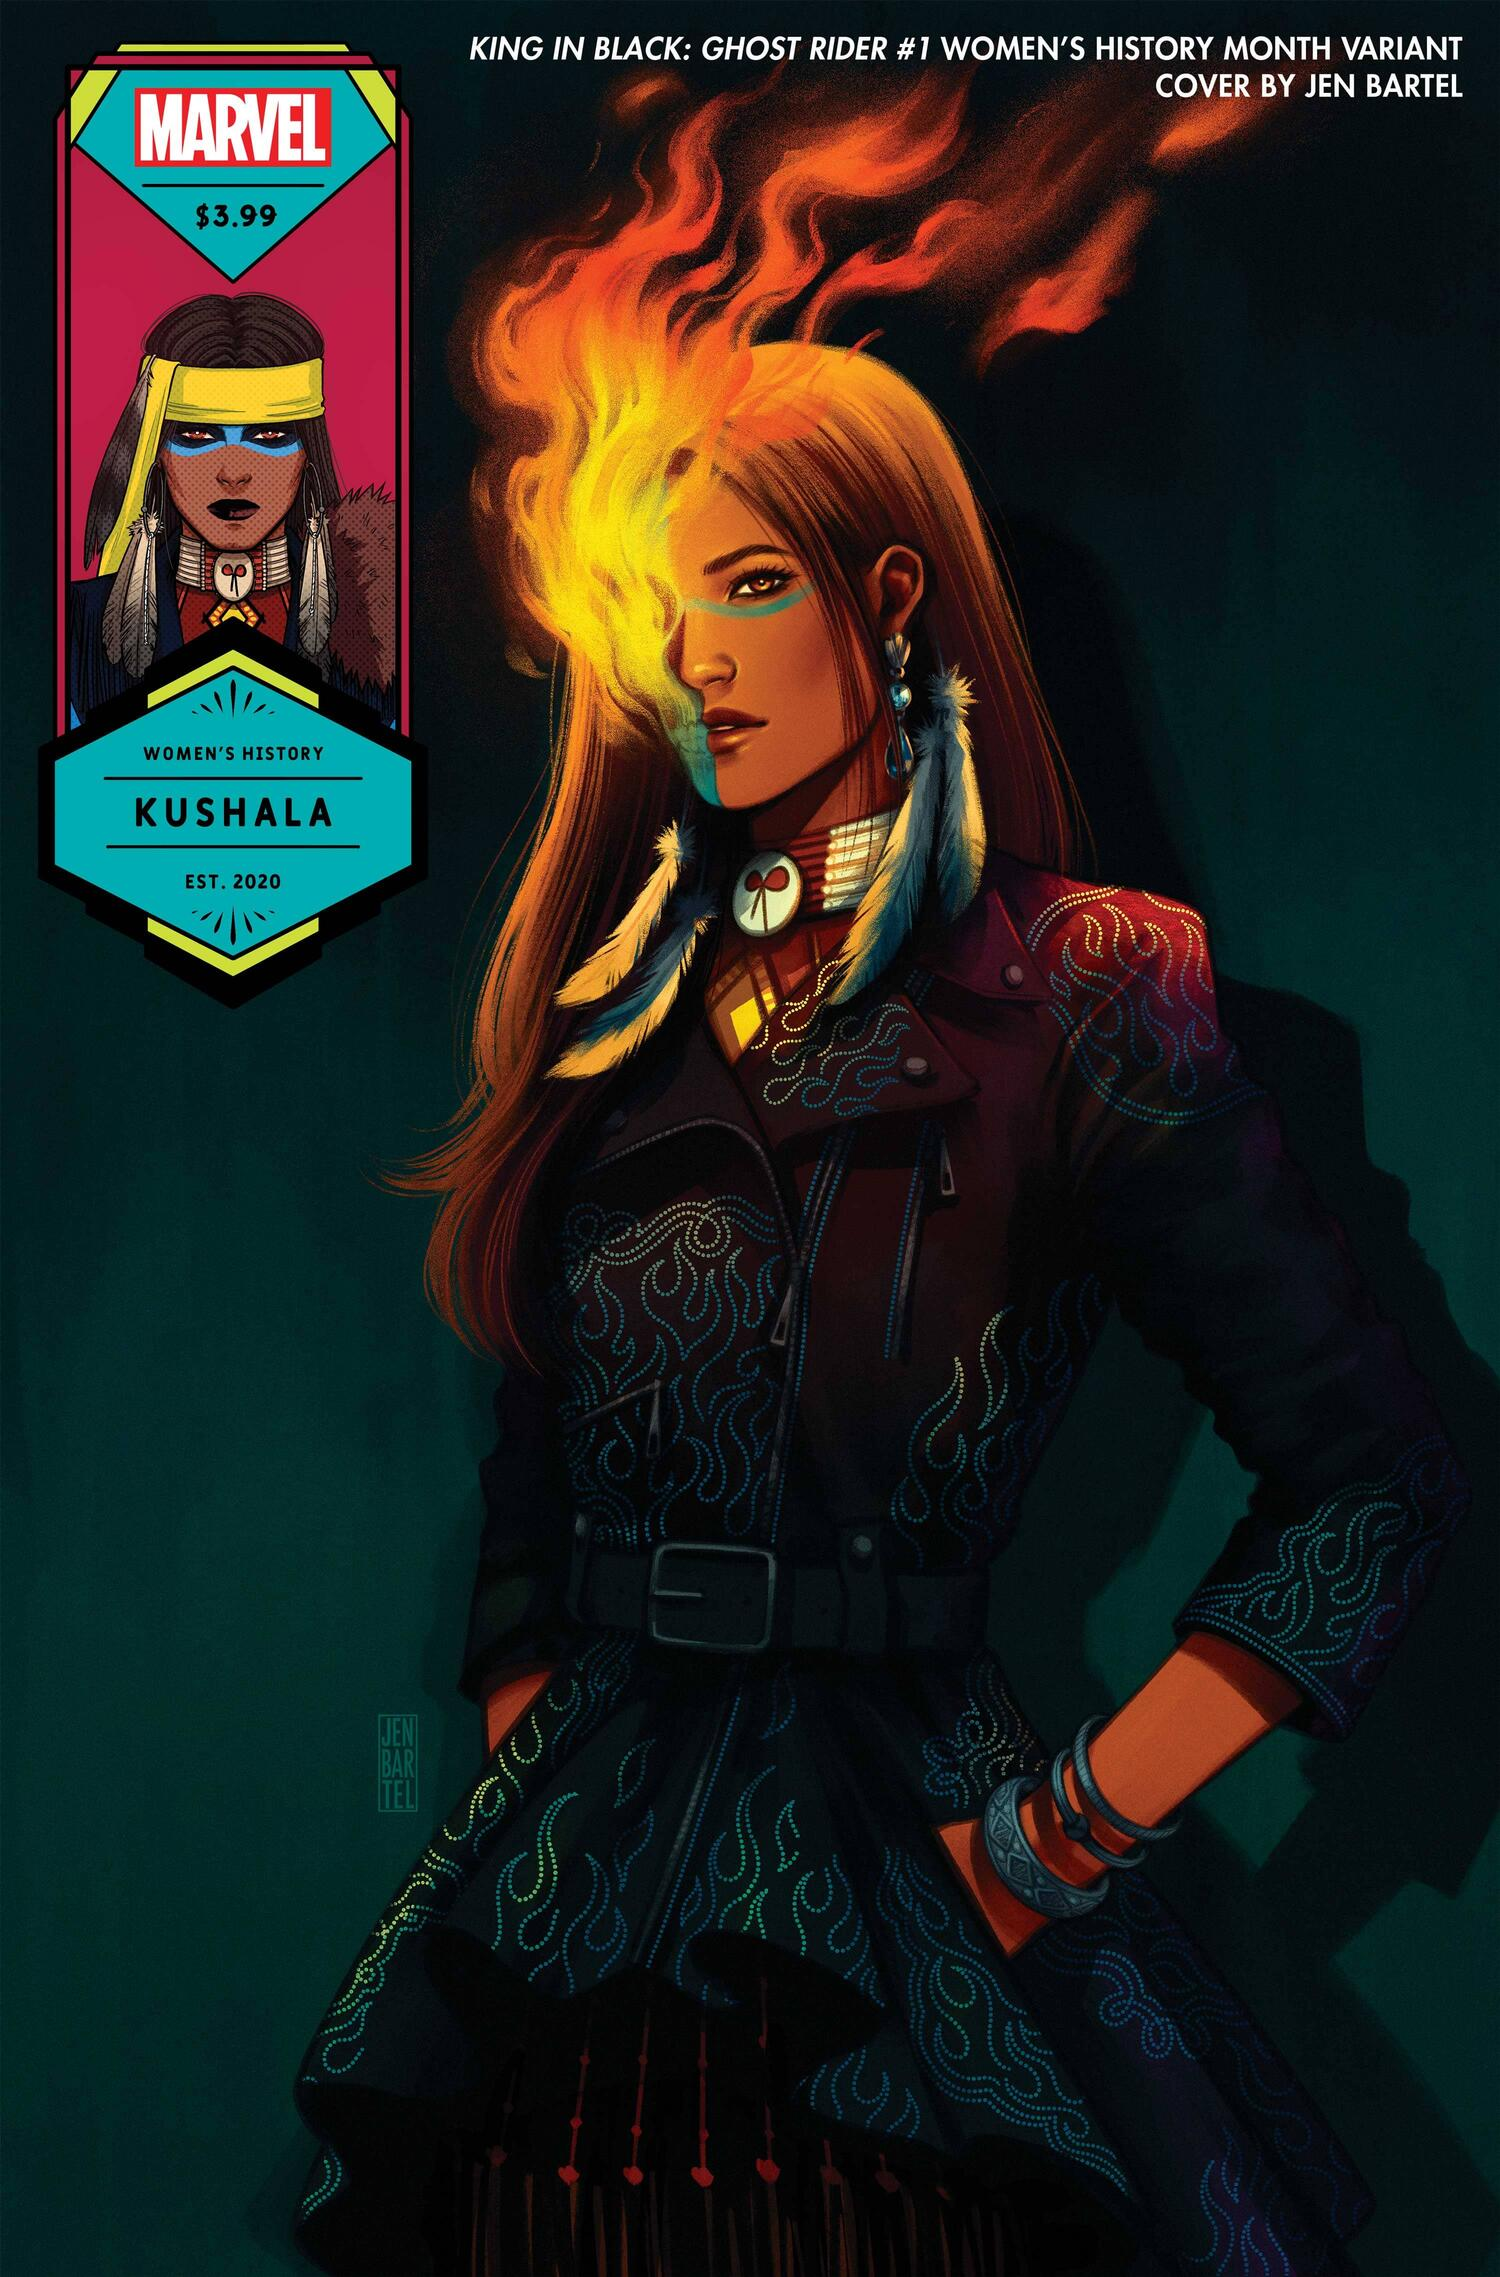 King in Black: Ghost Rider Women's History Month Variant